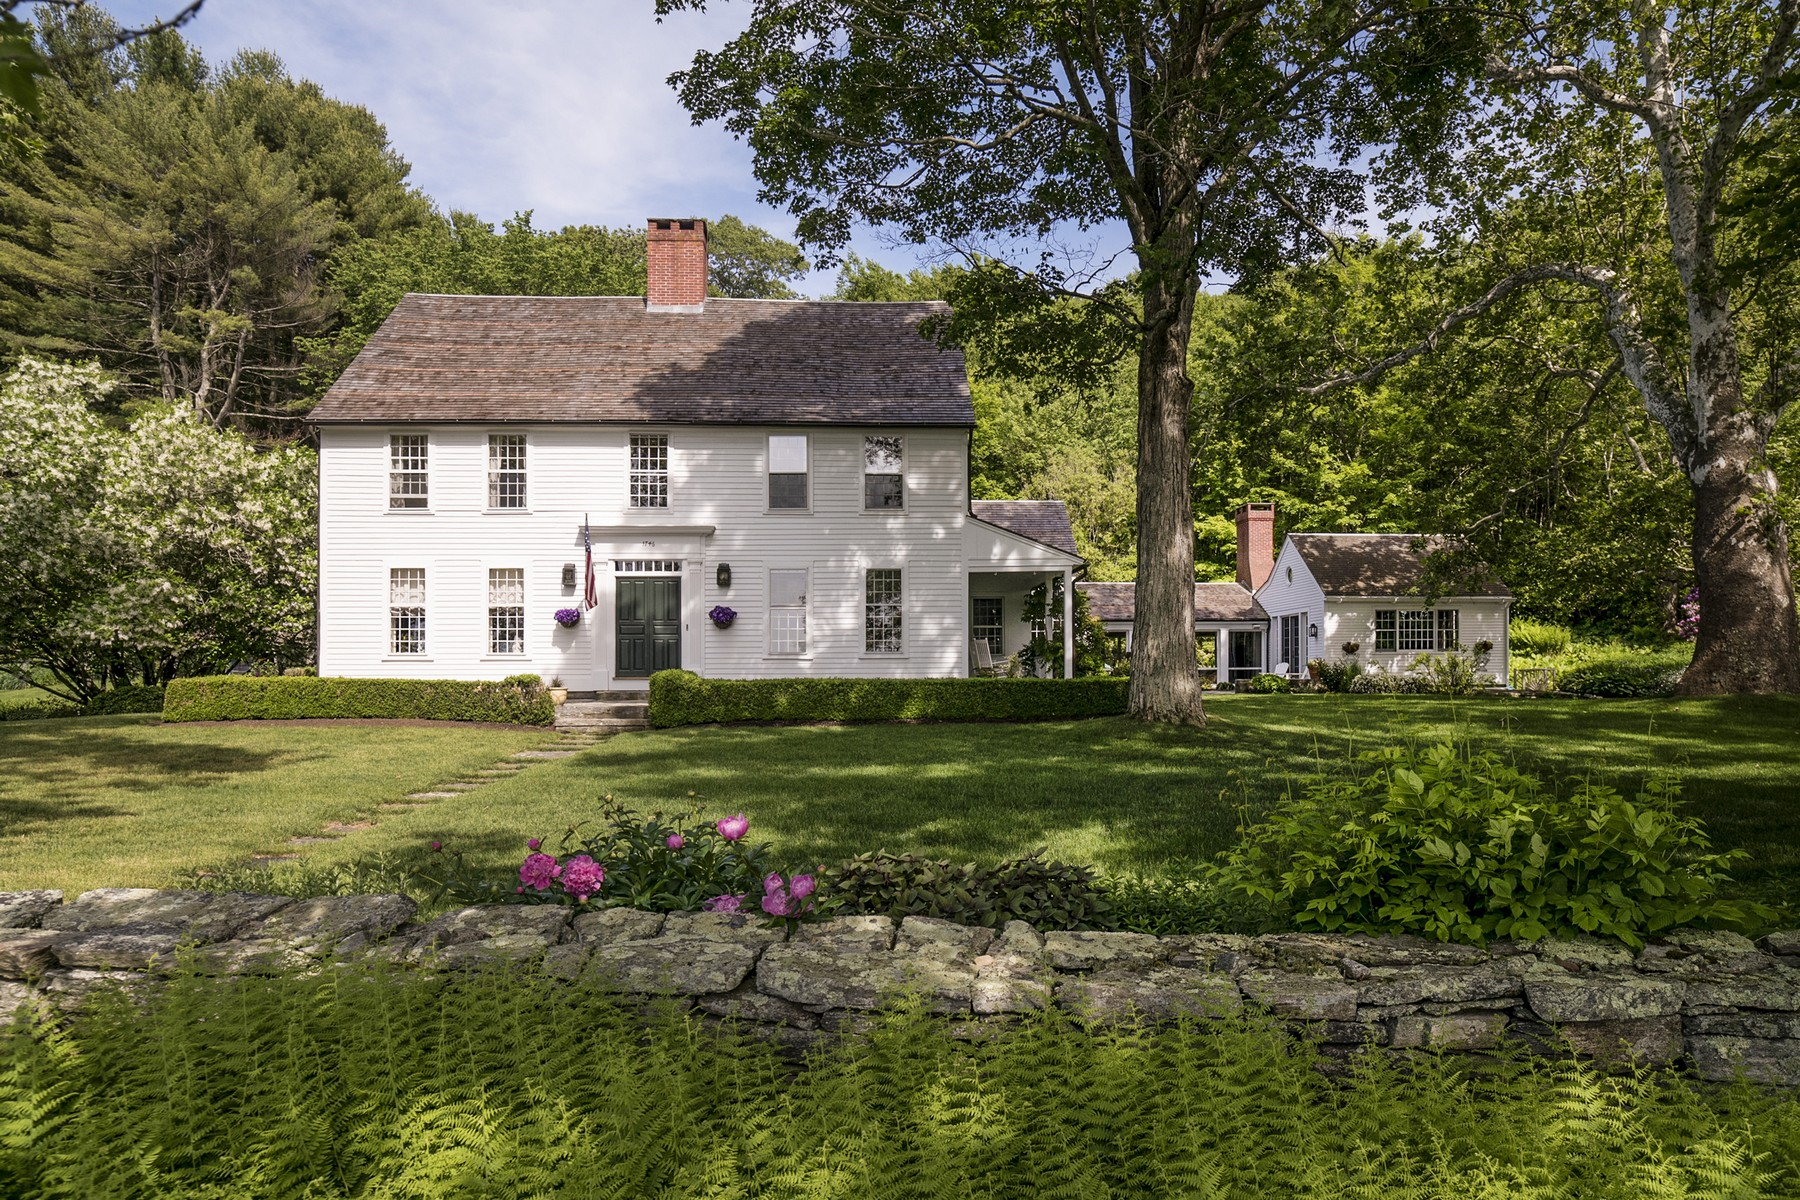 Single Family Home for Sale at Gracious 18th Century Residence 551 Hamburg Rd Lyme, Connecticut, 06371 United States